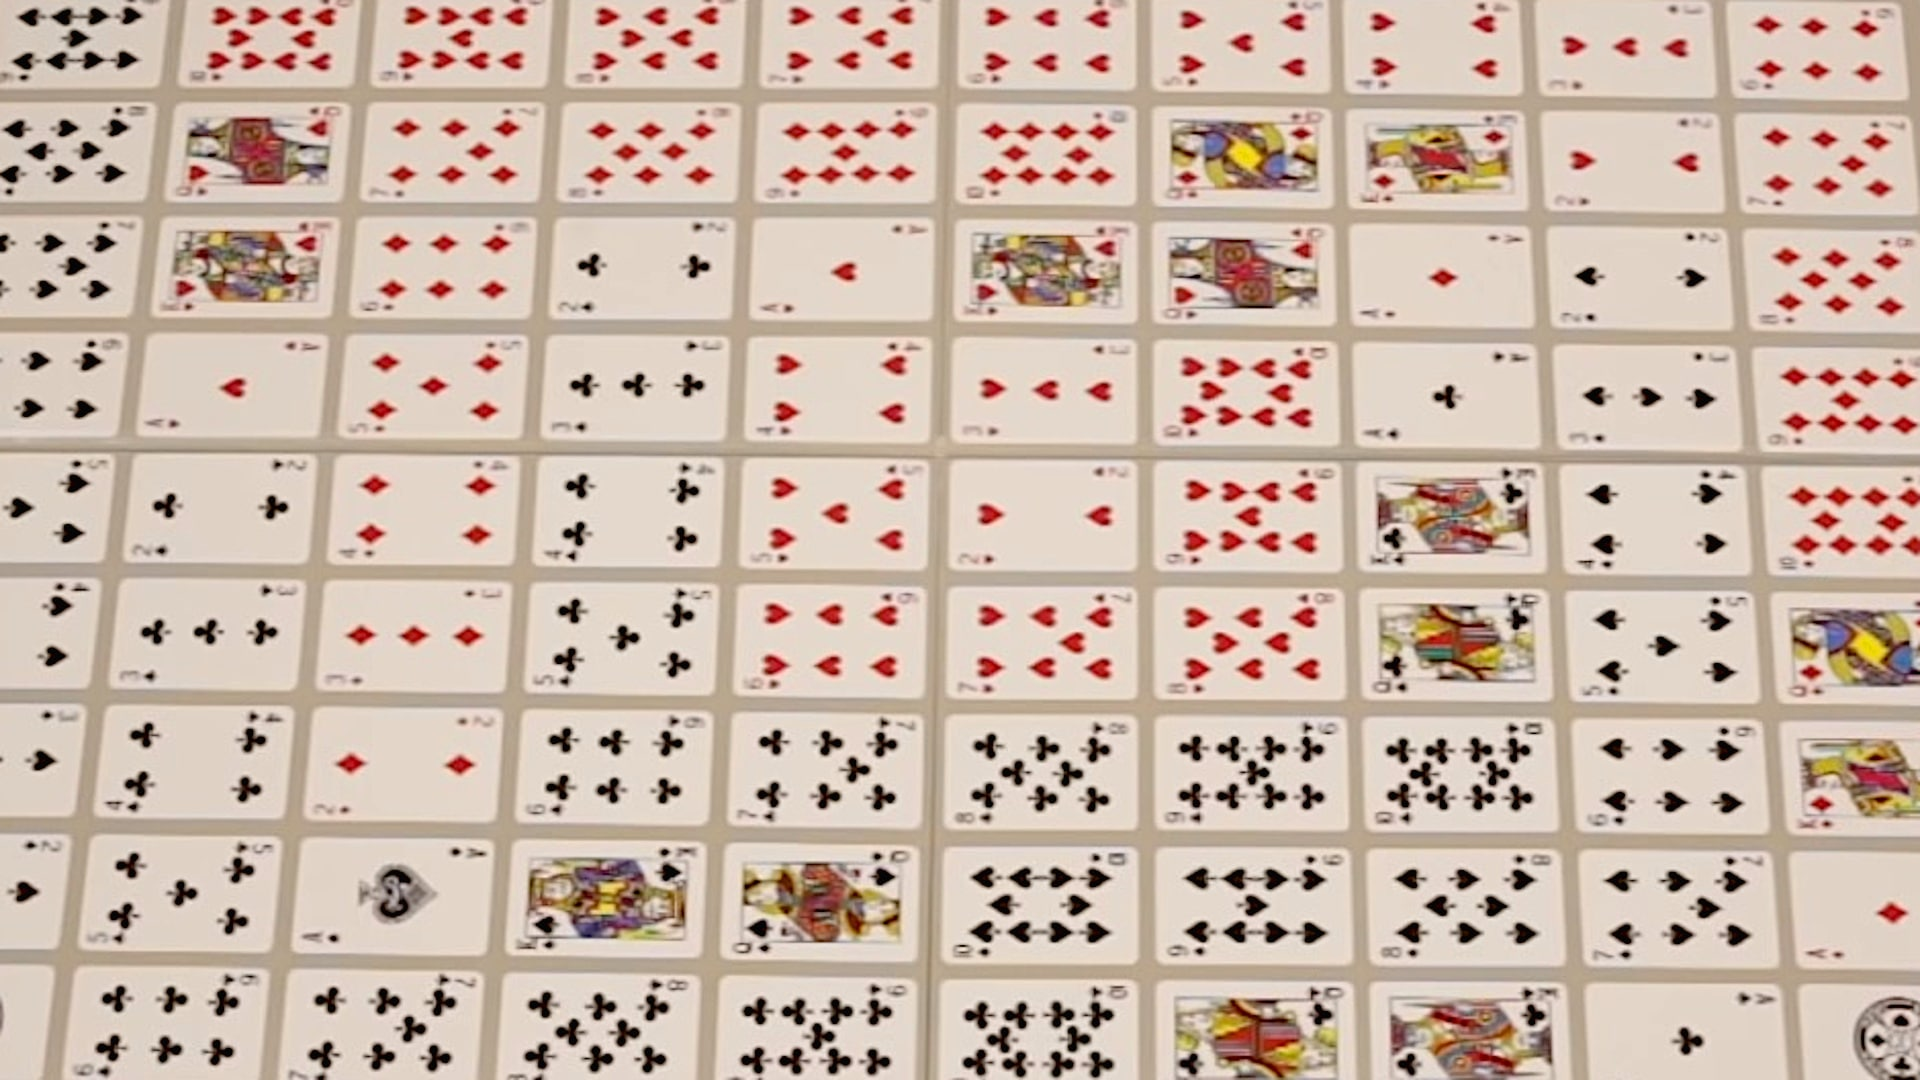 Sequence Game Rules and How to Play Guide